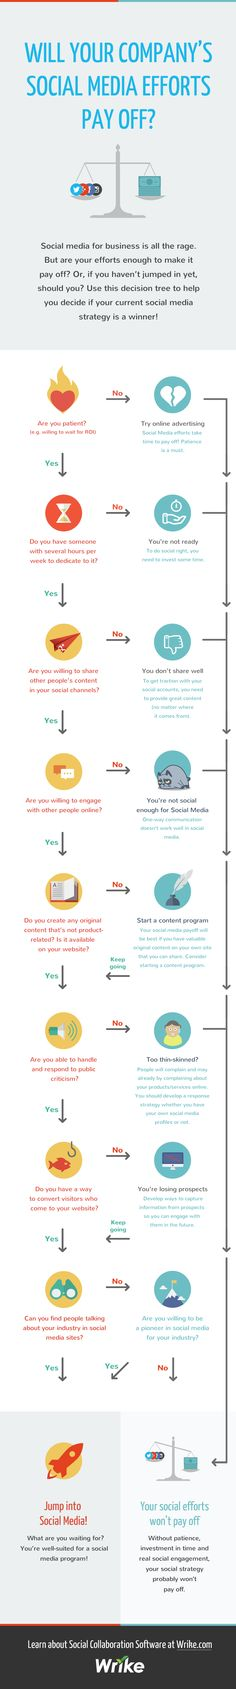 Will Your Company's Social Media Efforts Pay Off? #infographic